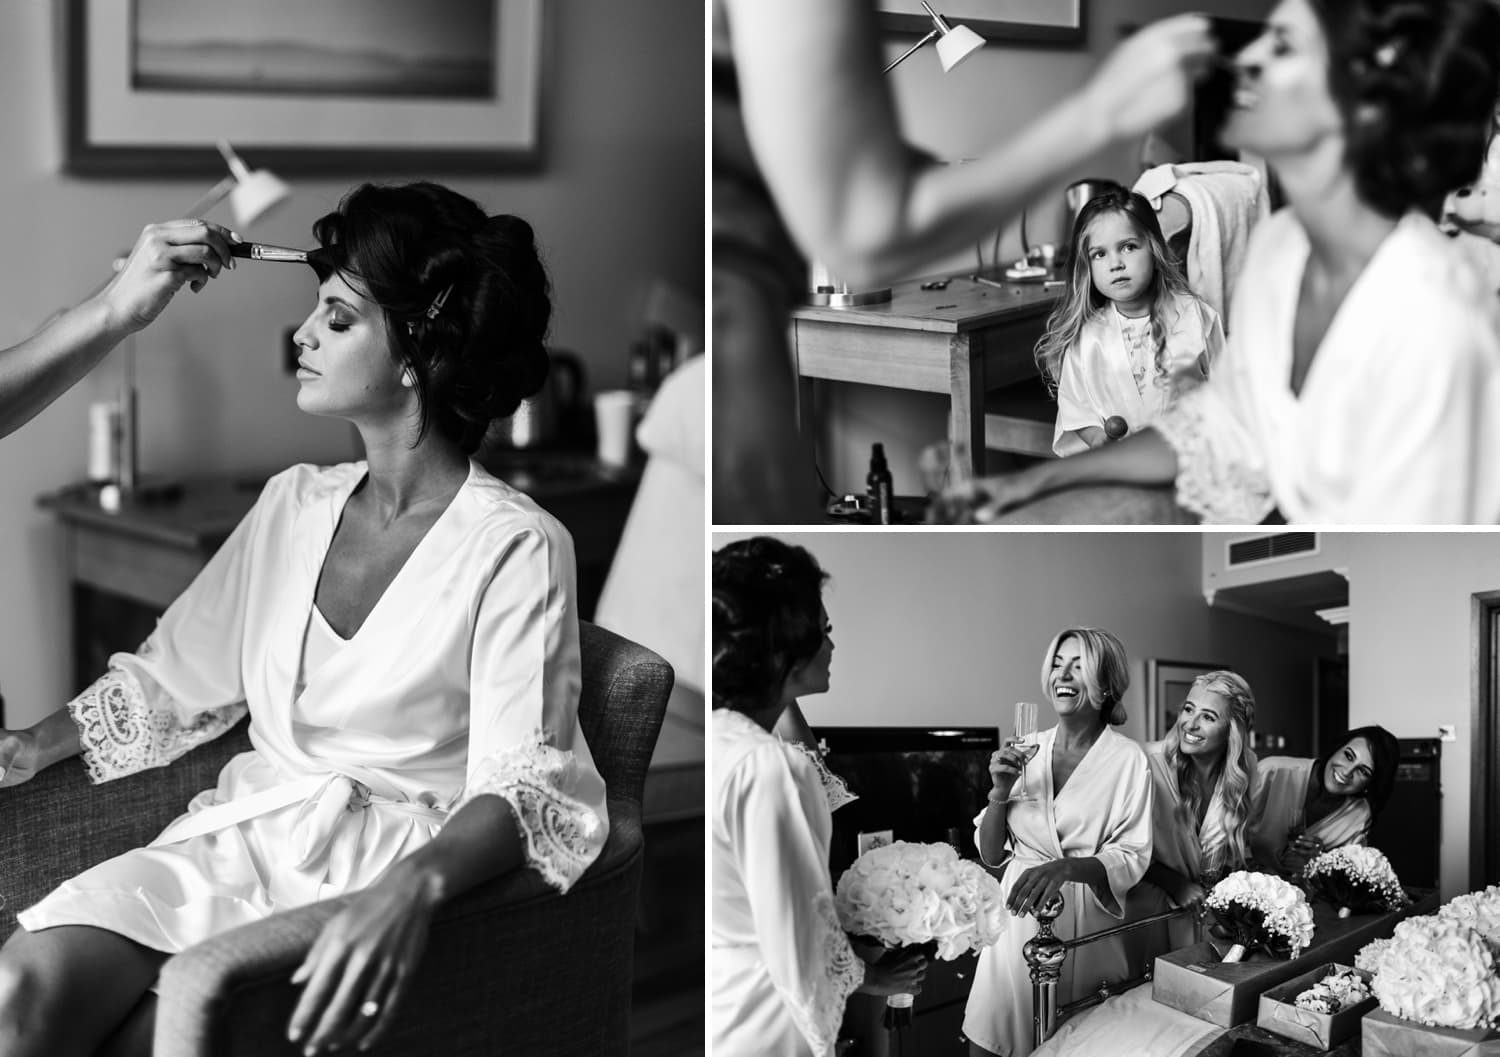 Bridal preparations for Hensol Castle wedding